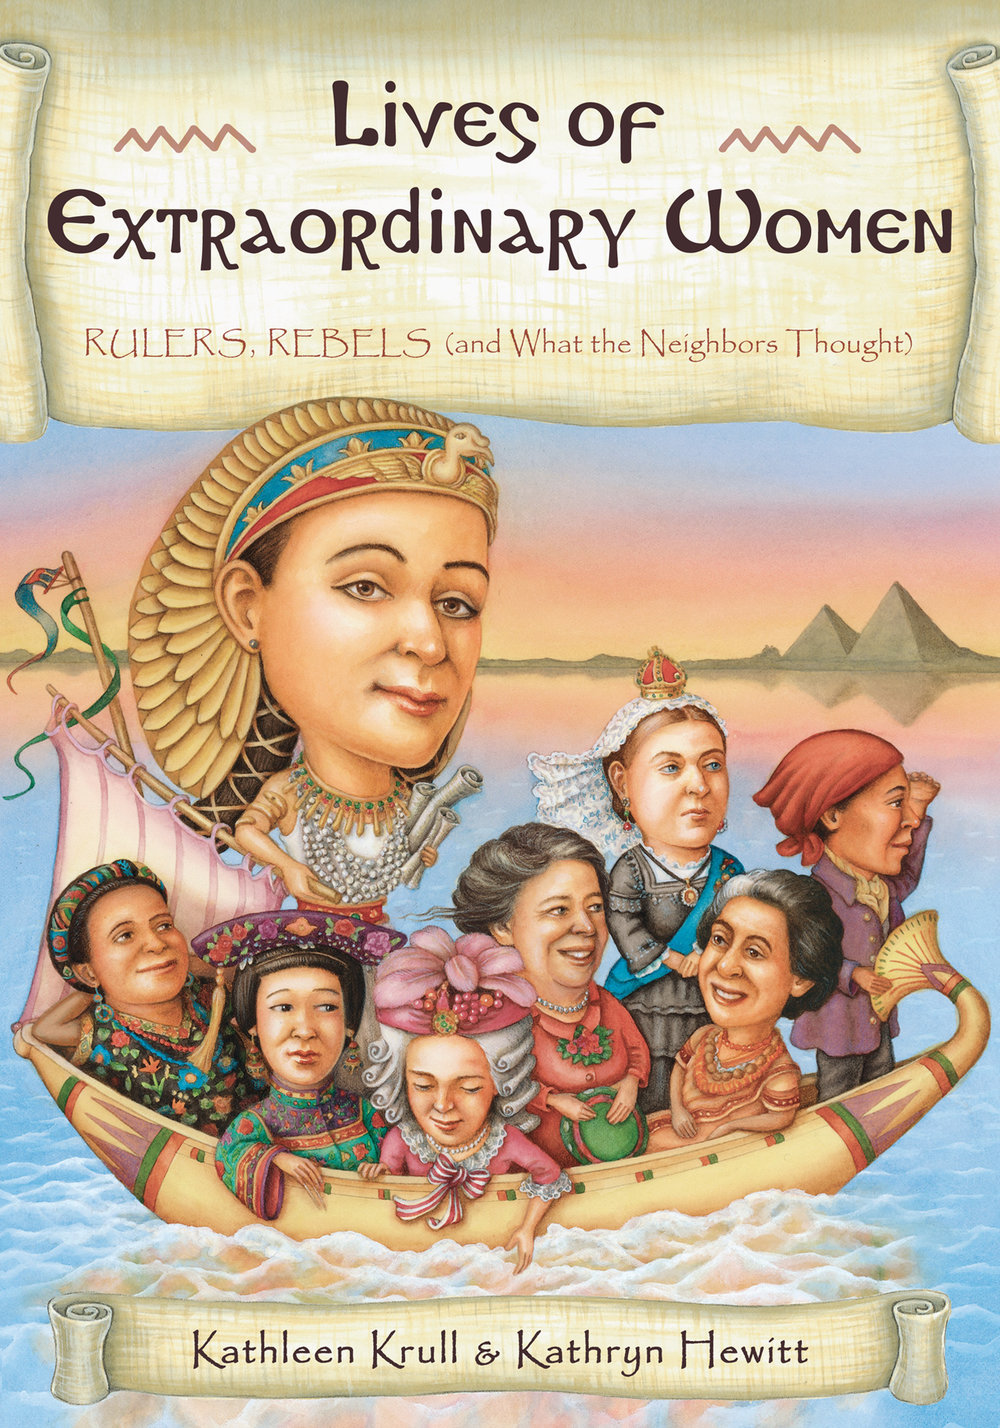 Lives of Extraordinary Women: Rulers, Rebels (and What the Neighbors Thought) - Kathleen Krull, illustrated by Kathryn Hewitt       Houghton Mifflin Harcourt 2013Not all governments have been run by men. Lives of Extraordinary Women turns the spotlight on women who have wielded power, revealing their feats--and flaws--for all the world to see. Here you'll find twenty of the most influential women in history: queens, warriors, prime ministers, first ladies, revolutionary leaders. Some are revered. Others are notorious. What were they really like?In this grand addition to their highly praised series, Kathleen Krull and Kathryn Hewitt celebrate some of the world's most noteworthy women, ranging from the famous to those whose stories have rarely been told.